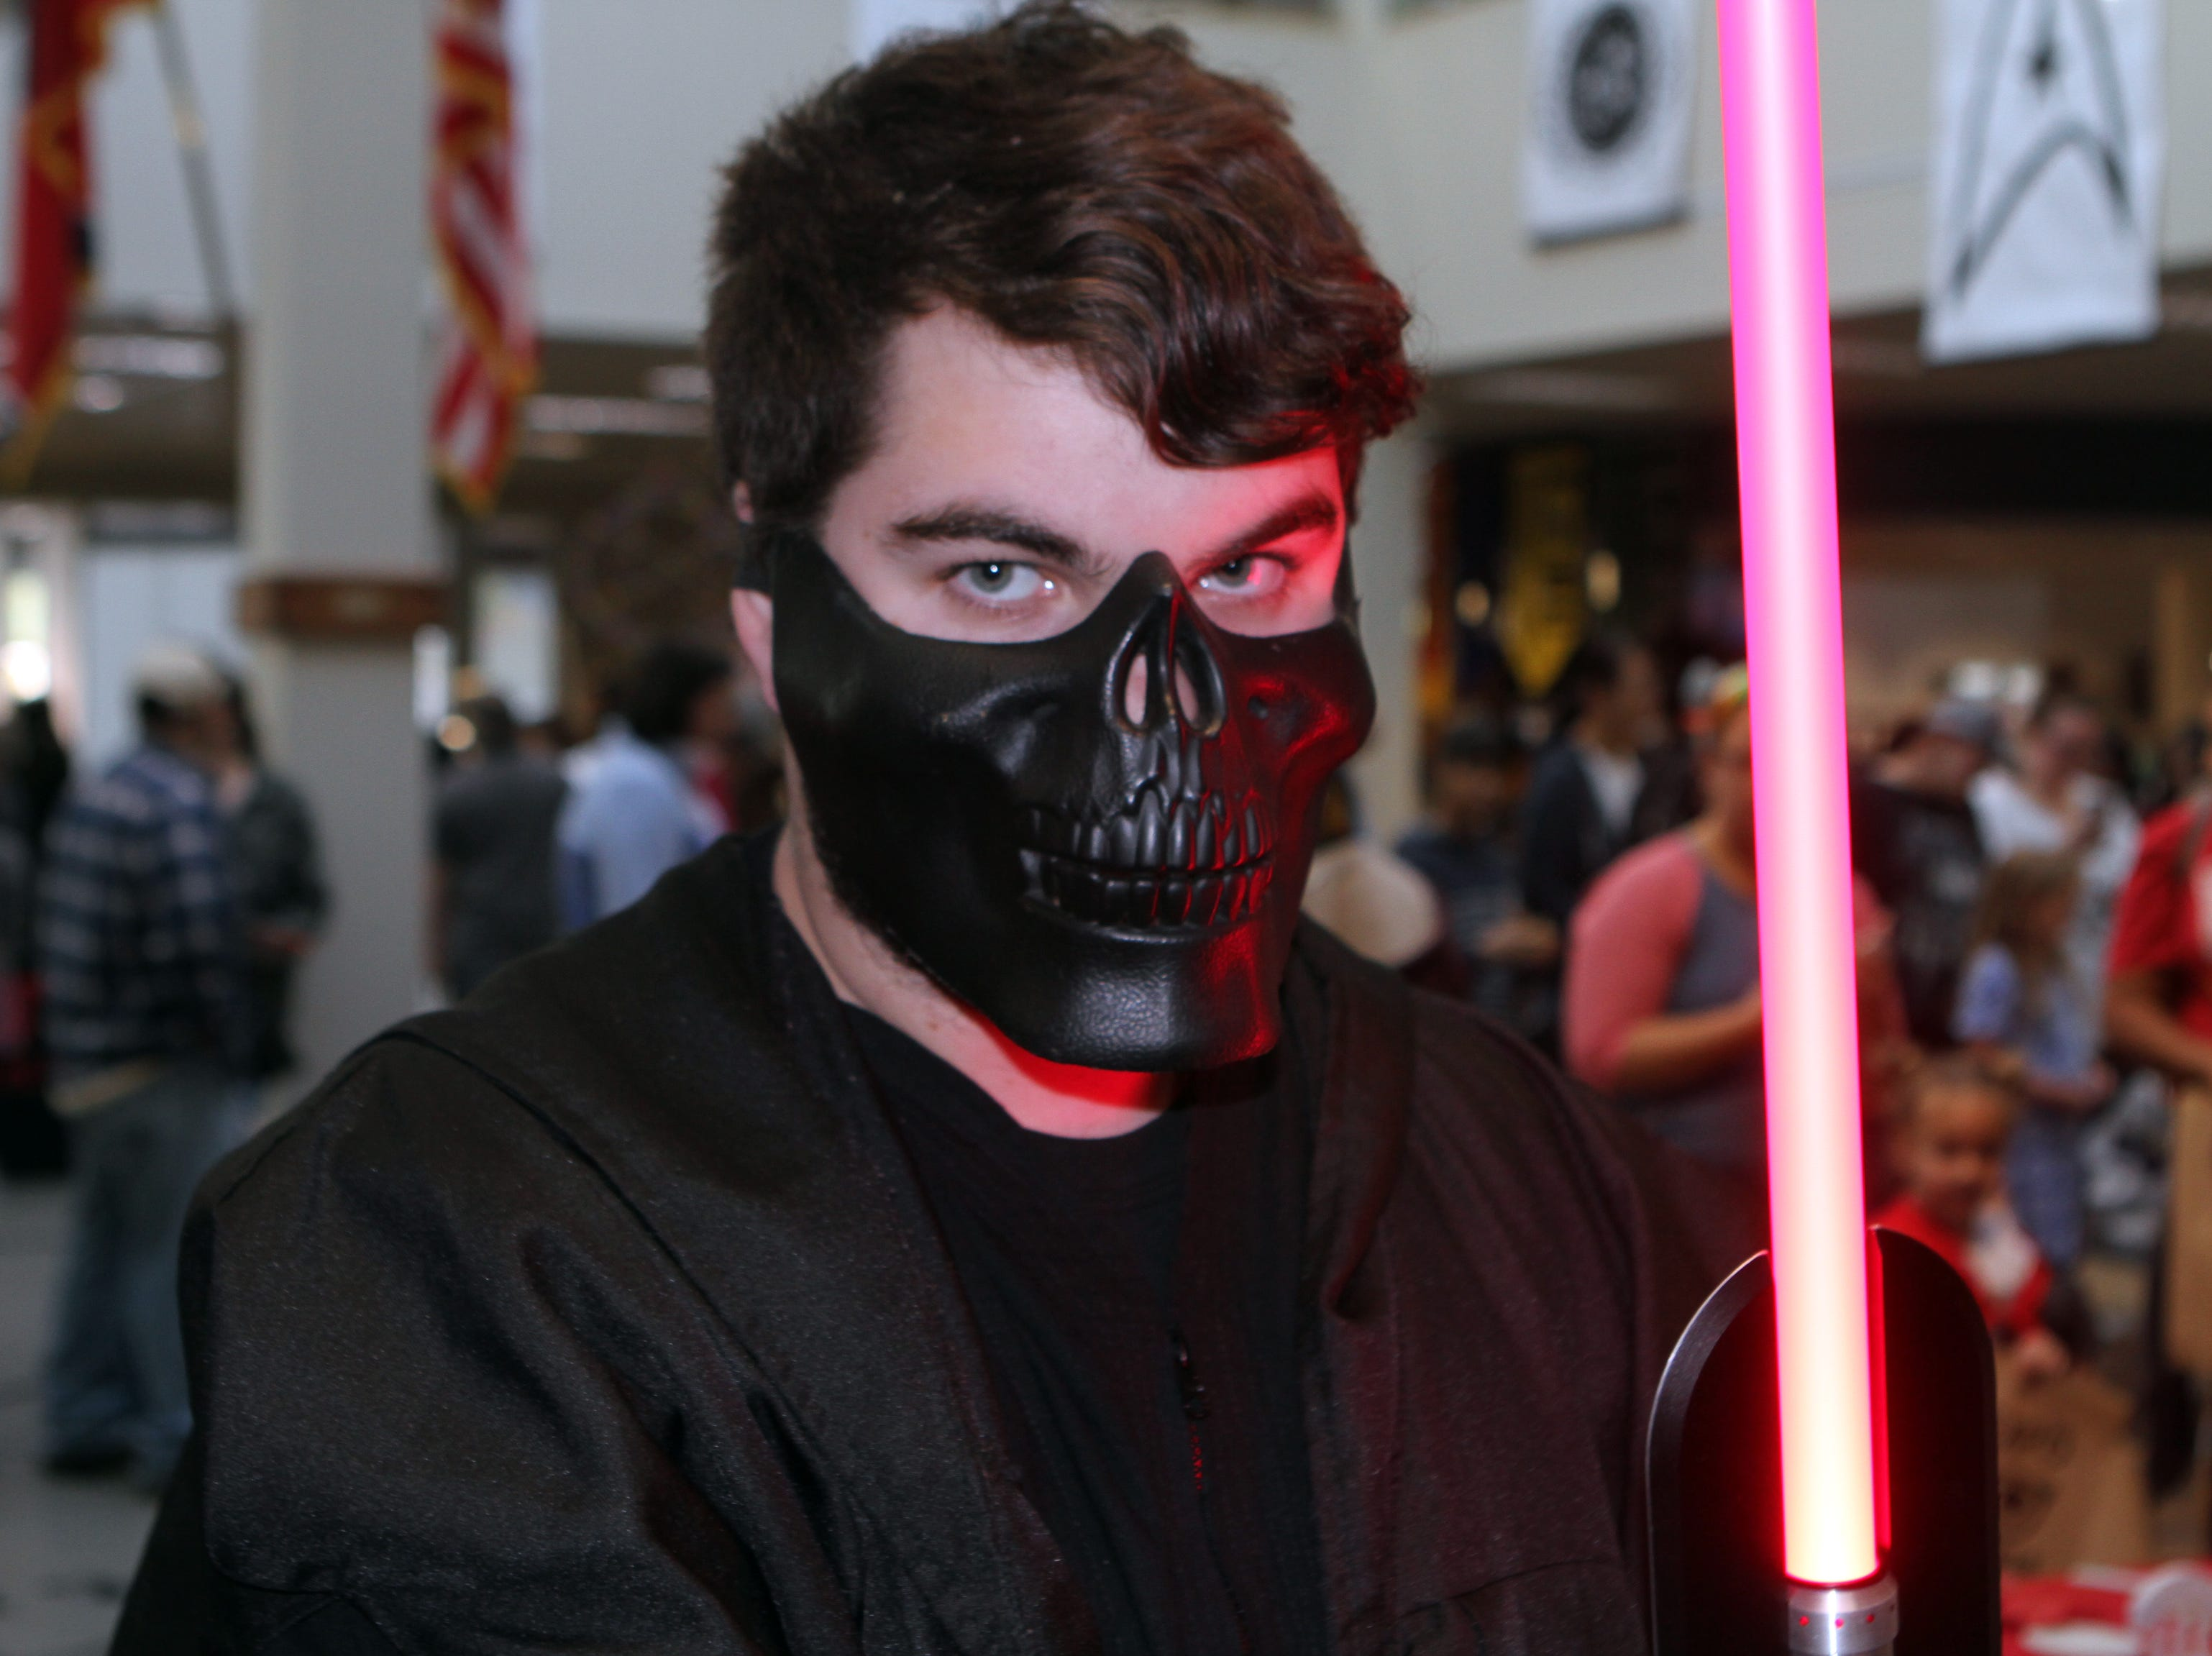 James Wallace at CMC Public Library's annual Sci-Fi Expo on Saturday, November 3, 2018.